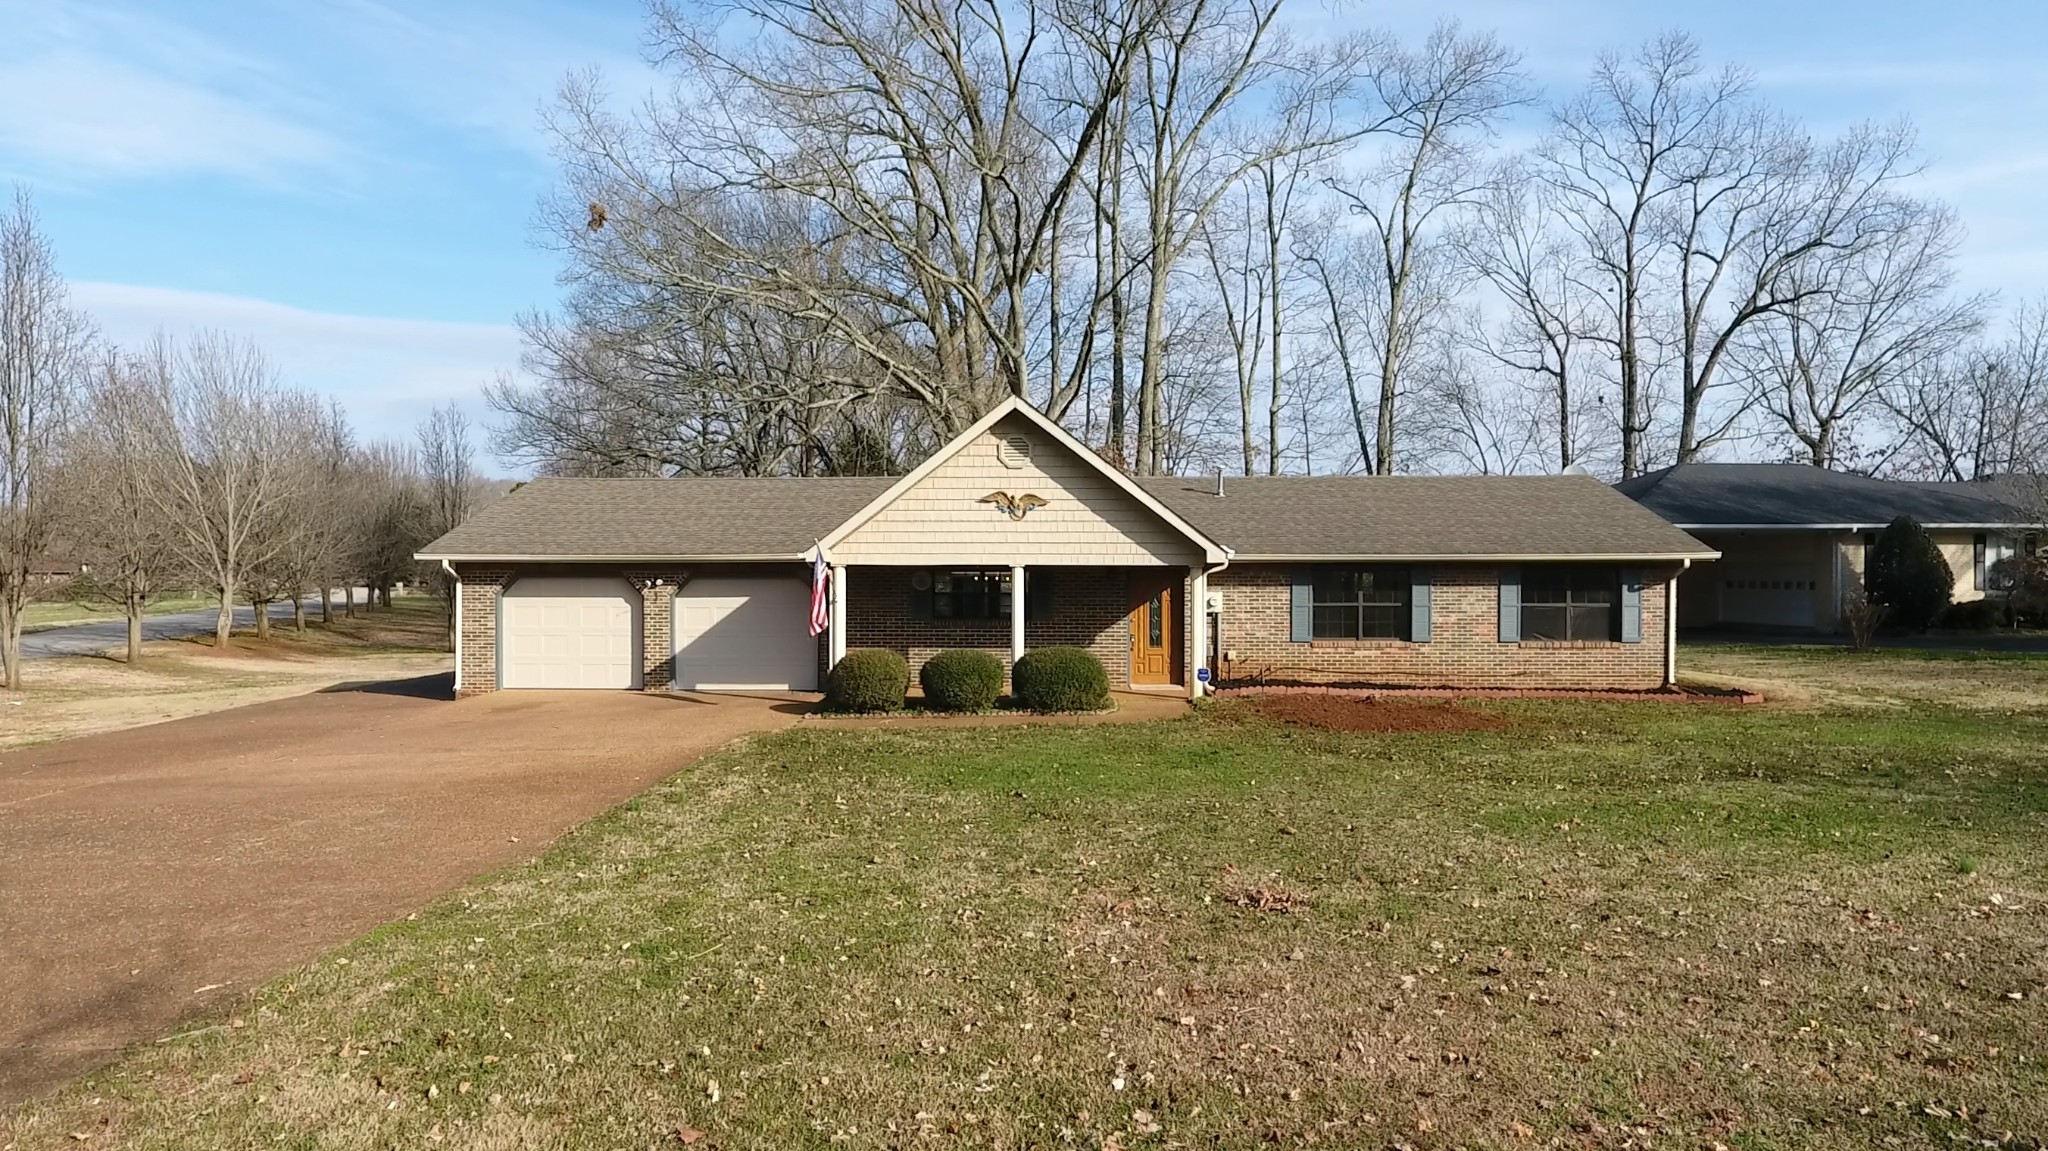 1340 Dripping Springs Rd, Winchester, TN 37398 - Winchester, TN real estate listing